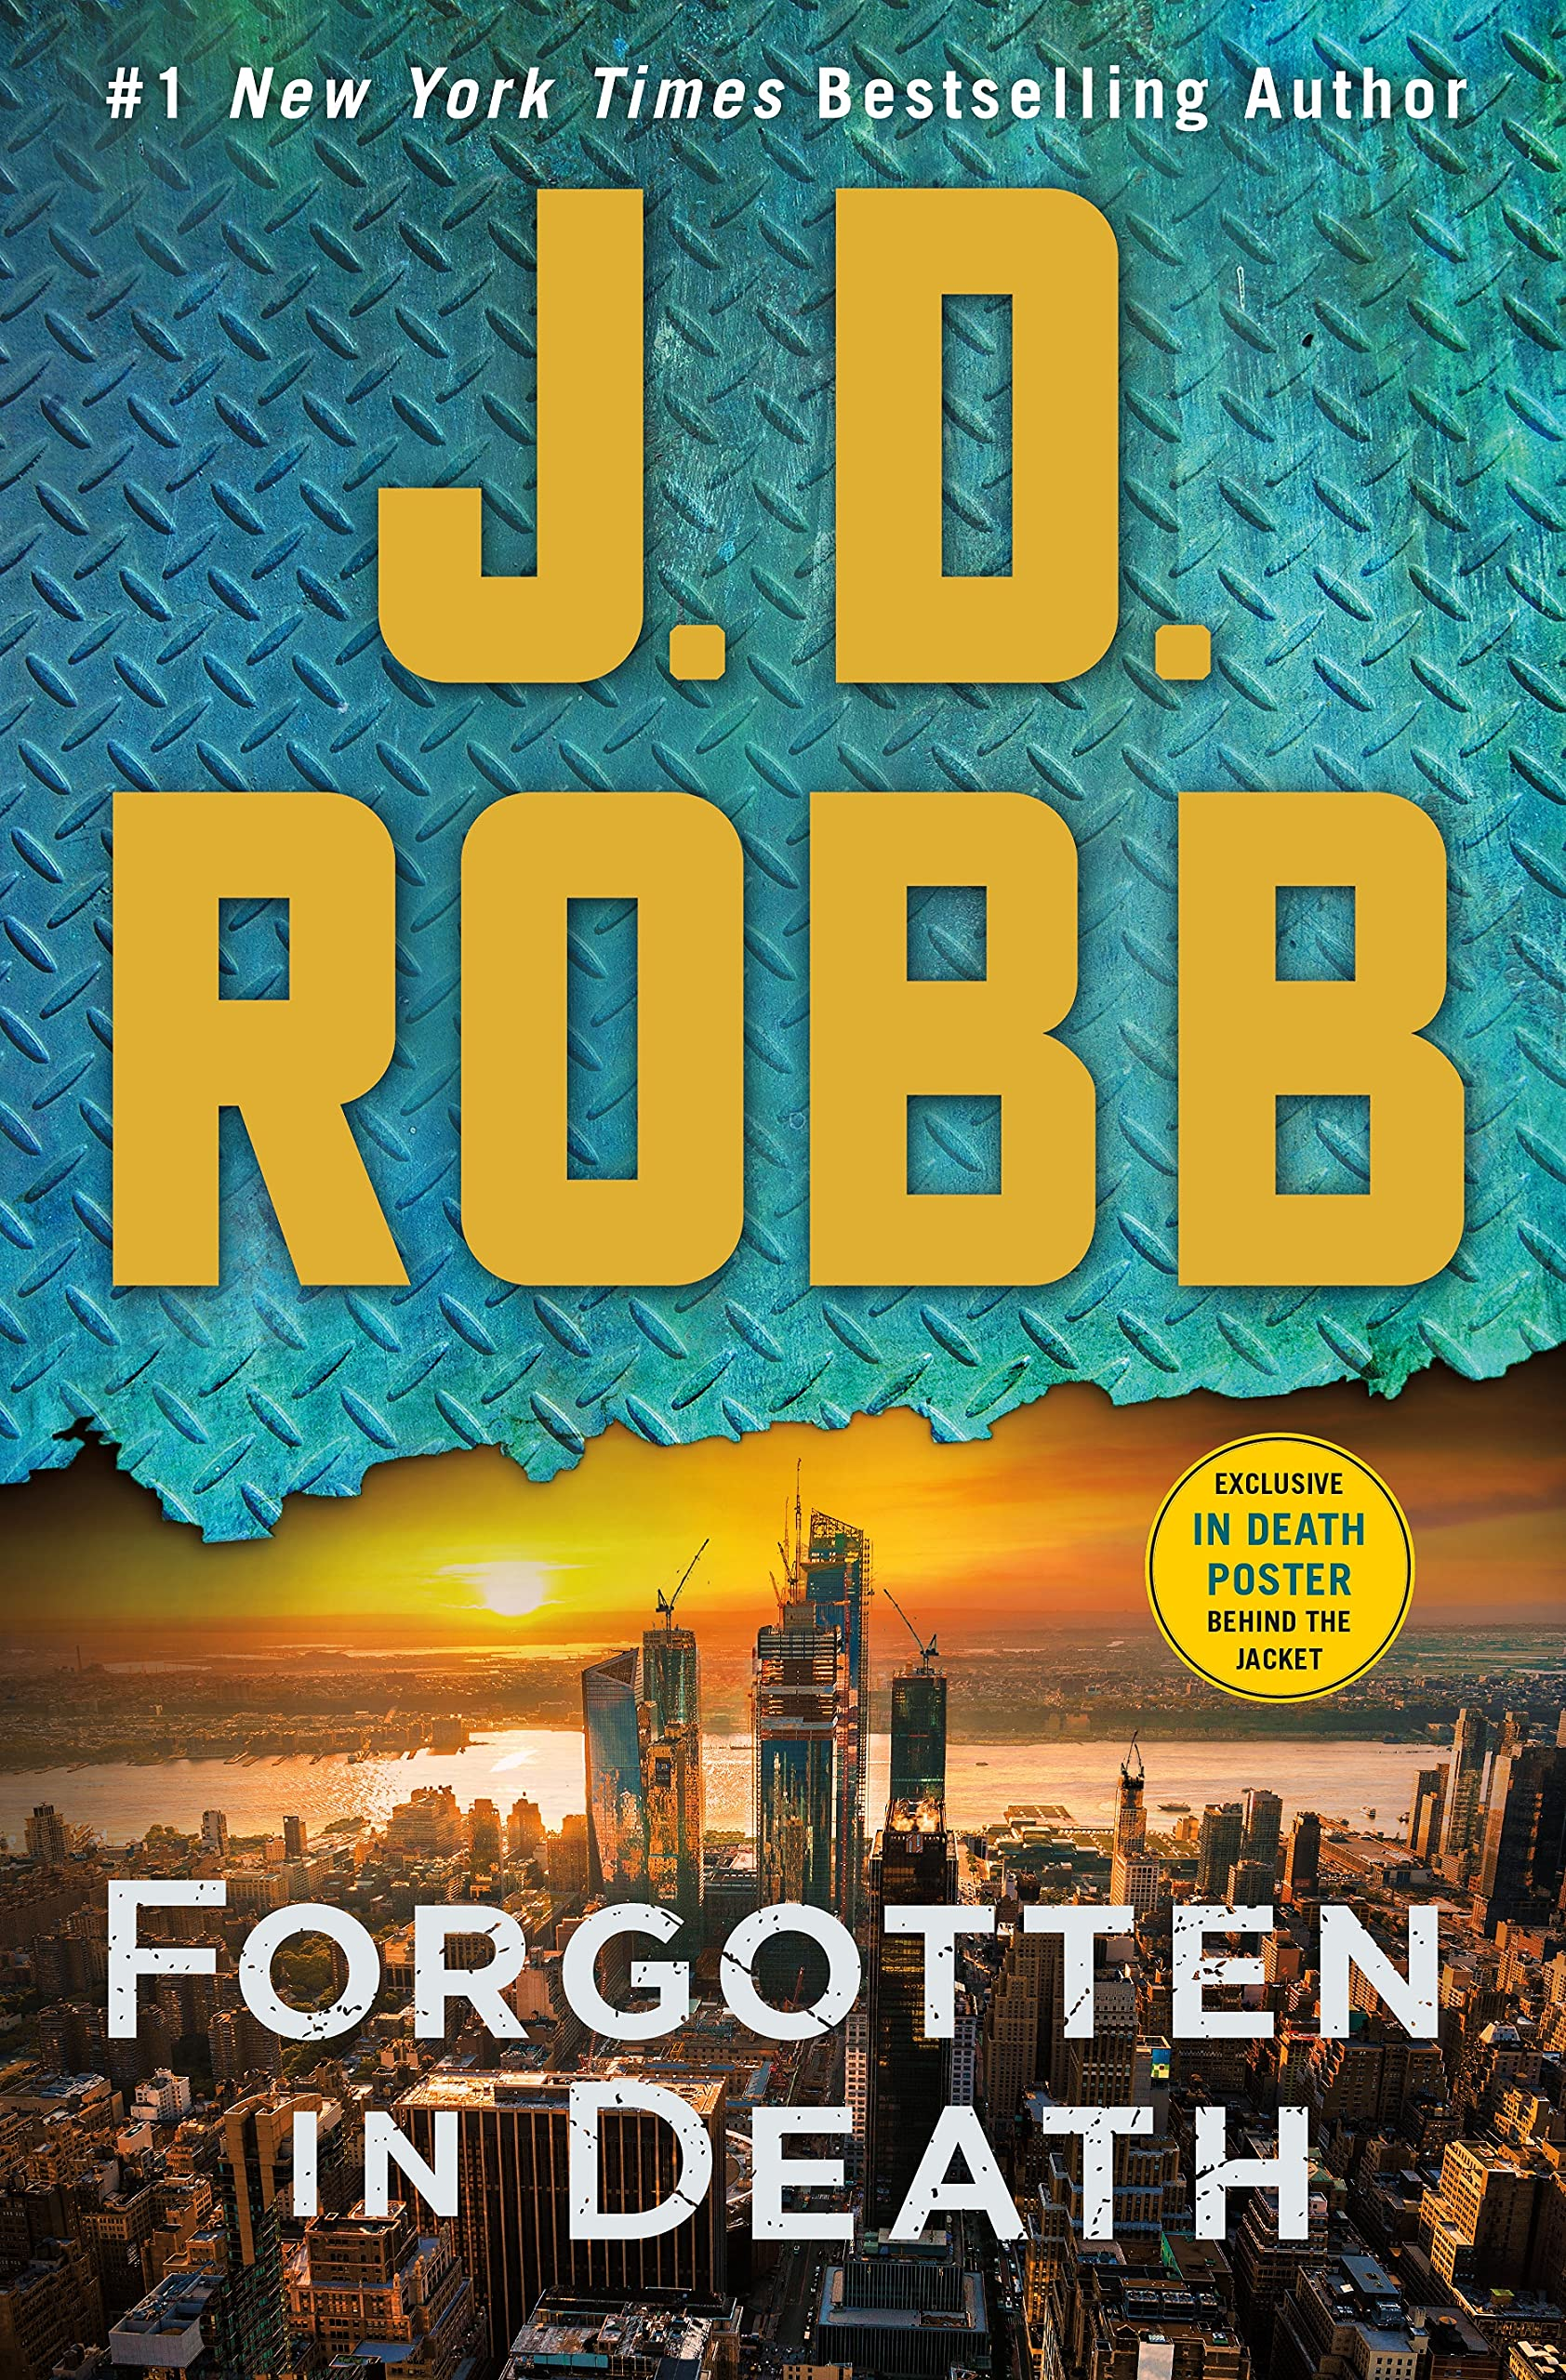 Apple Books Bestsellers: J.D. Robb Returns to the Top